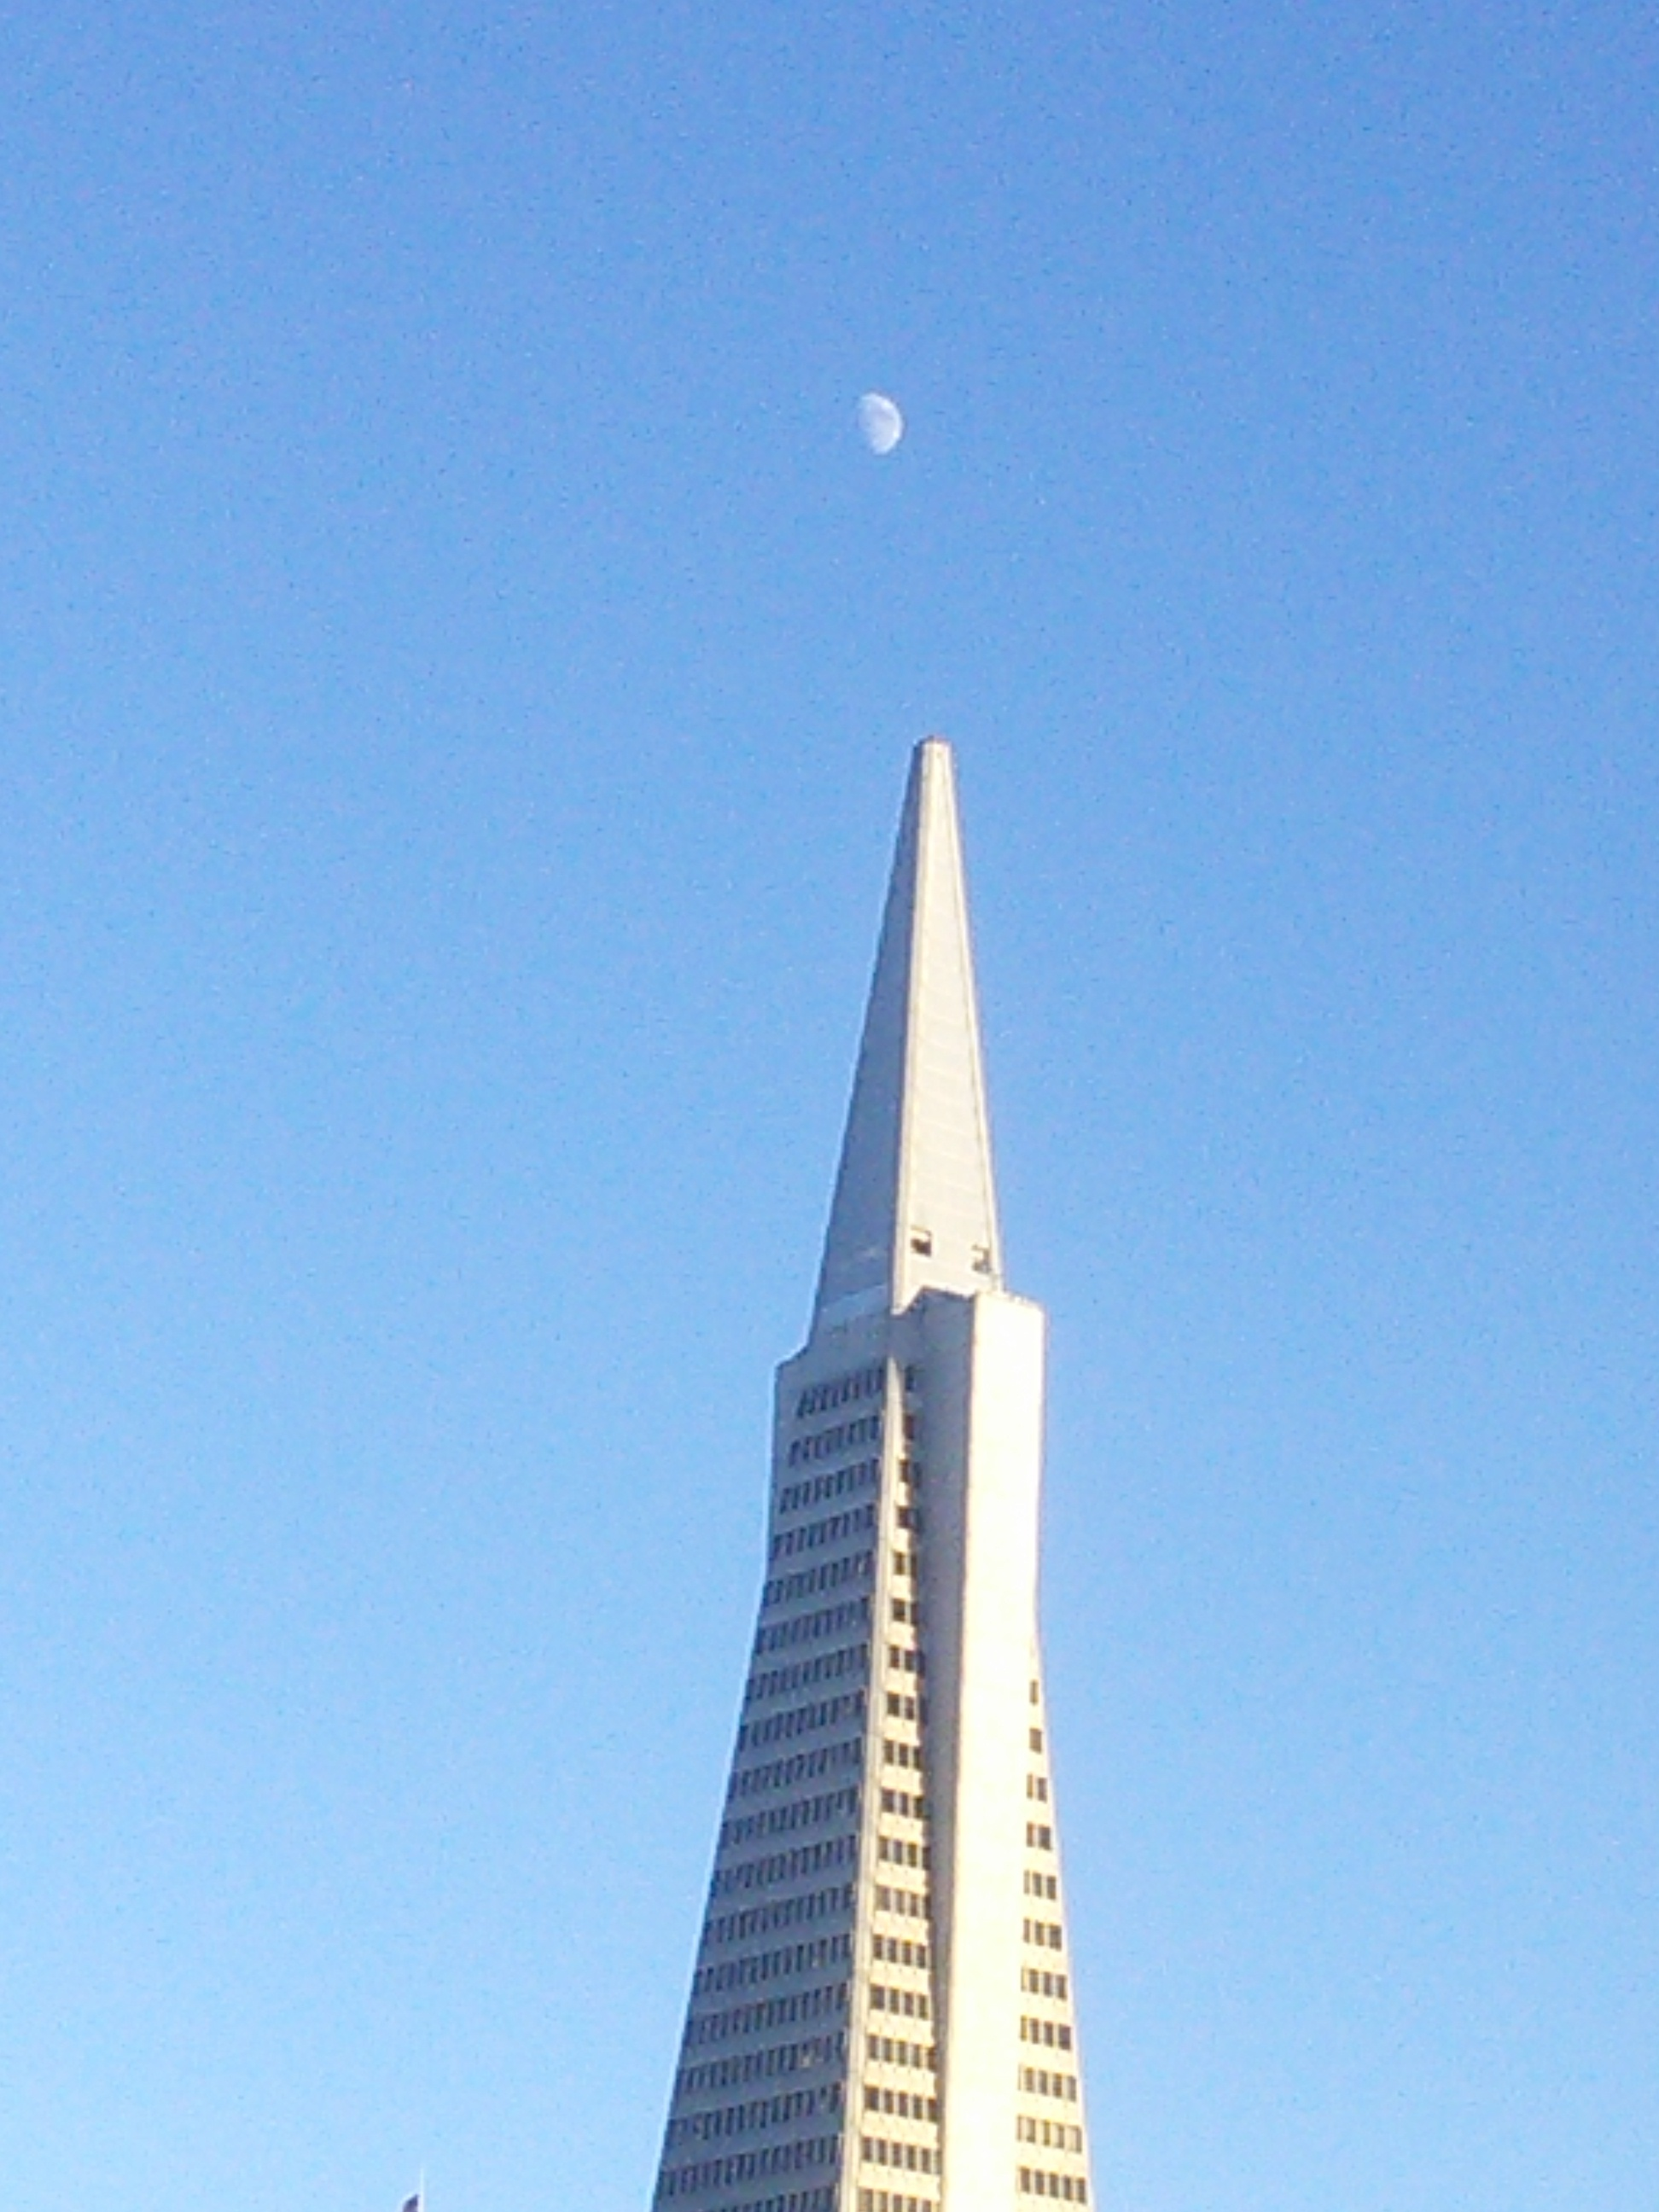 pyramid building with Moon